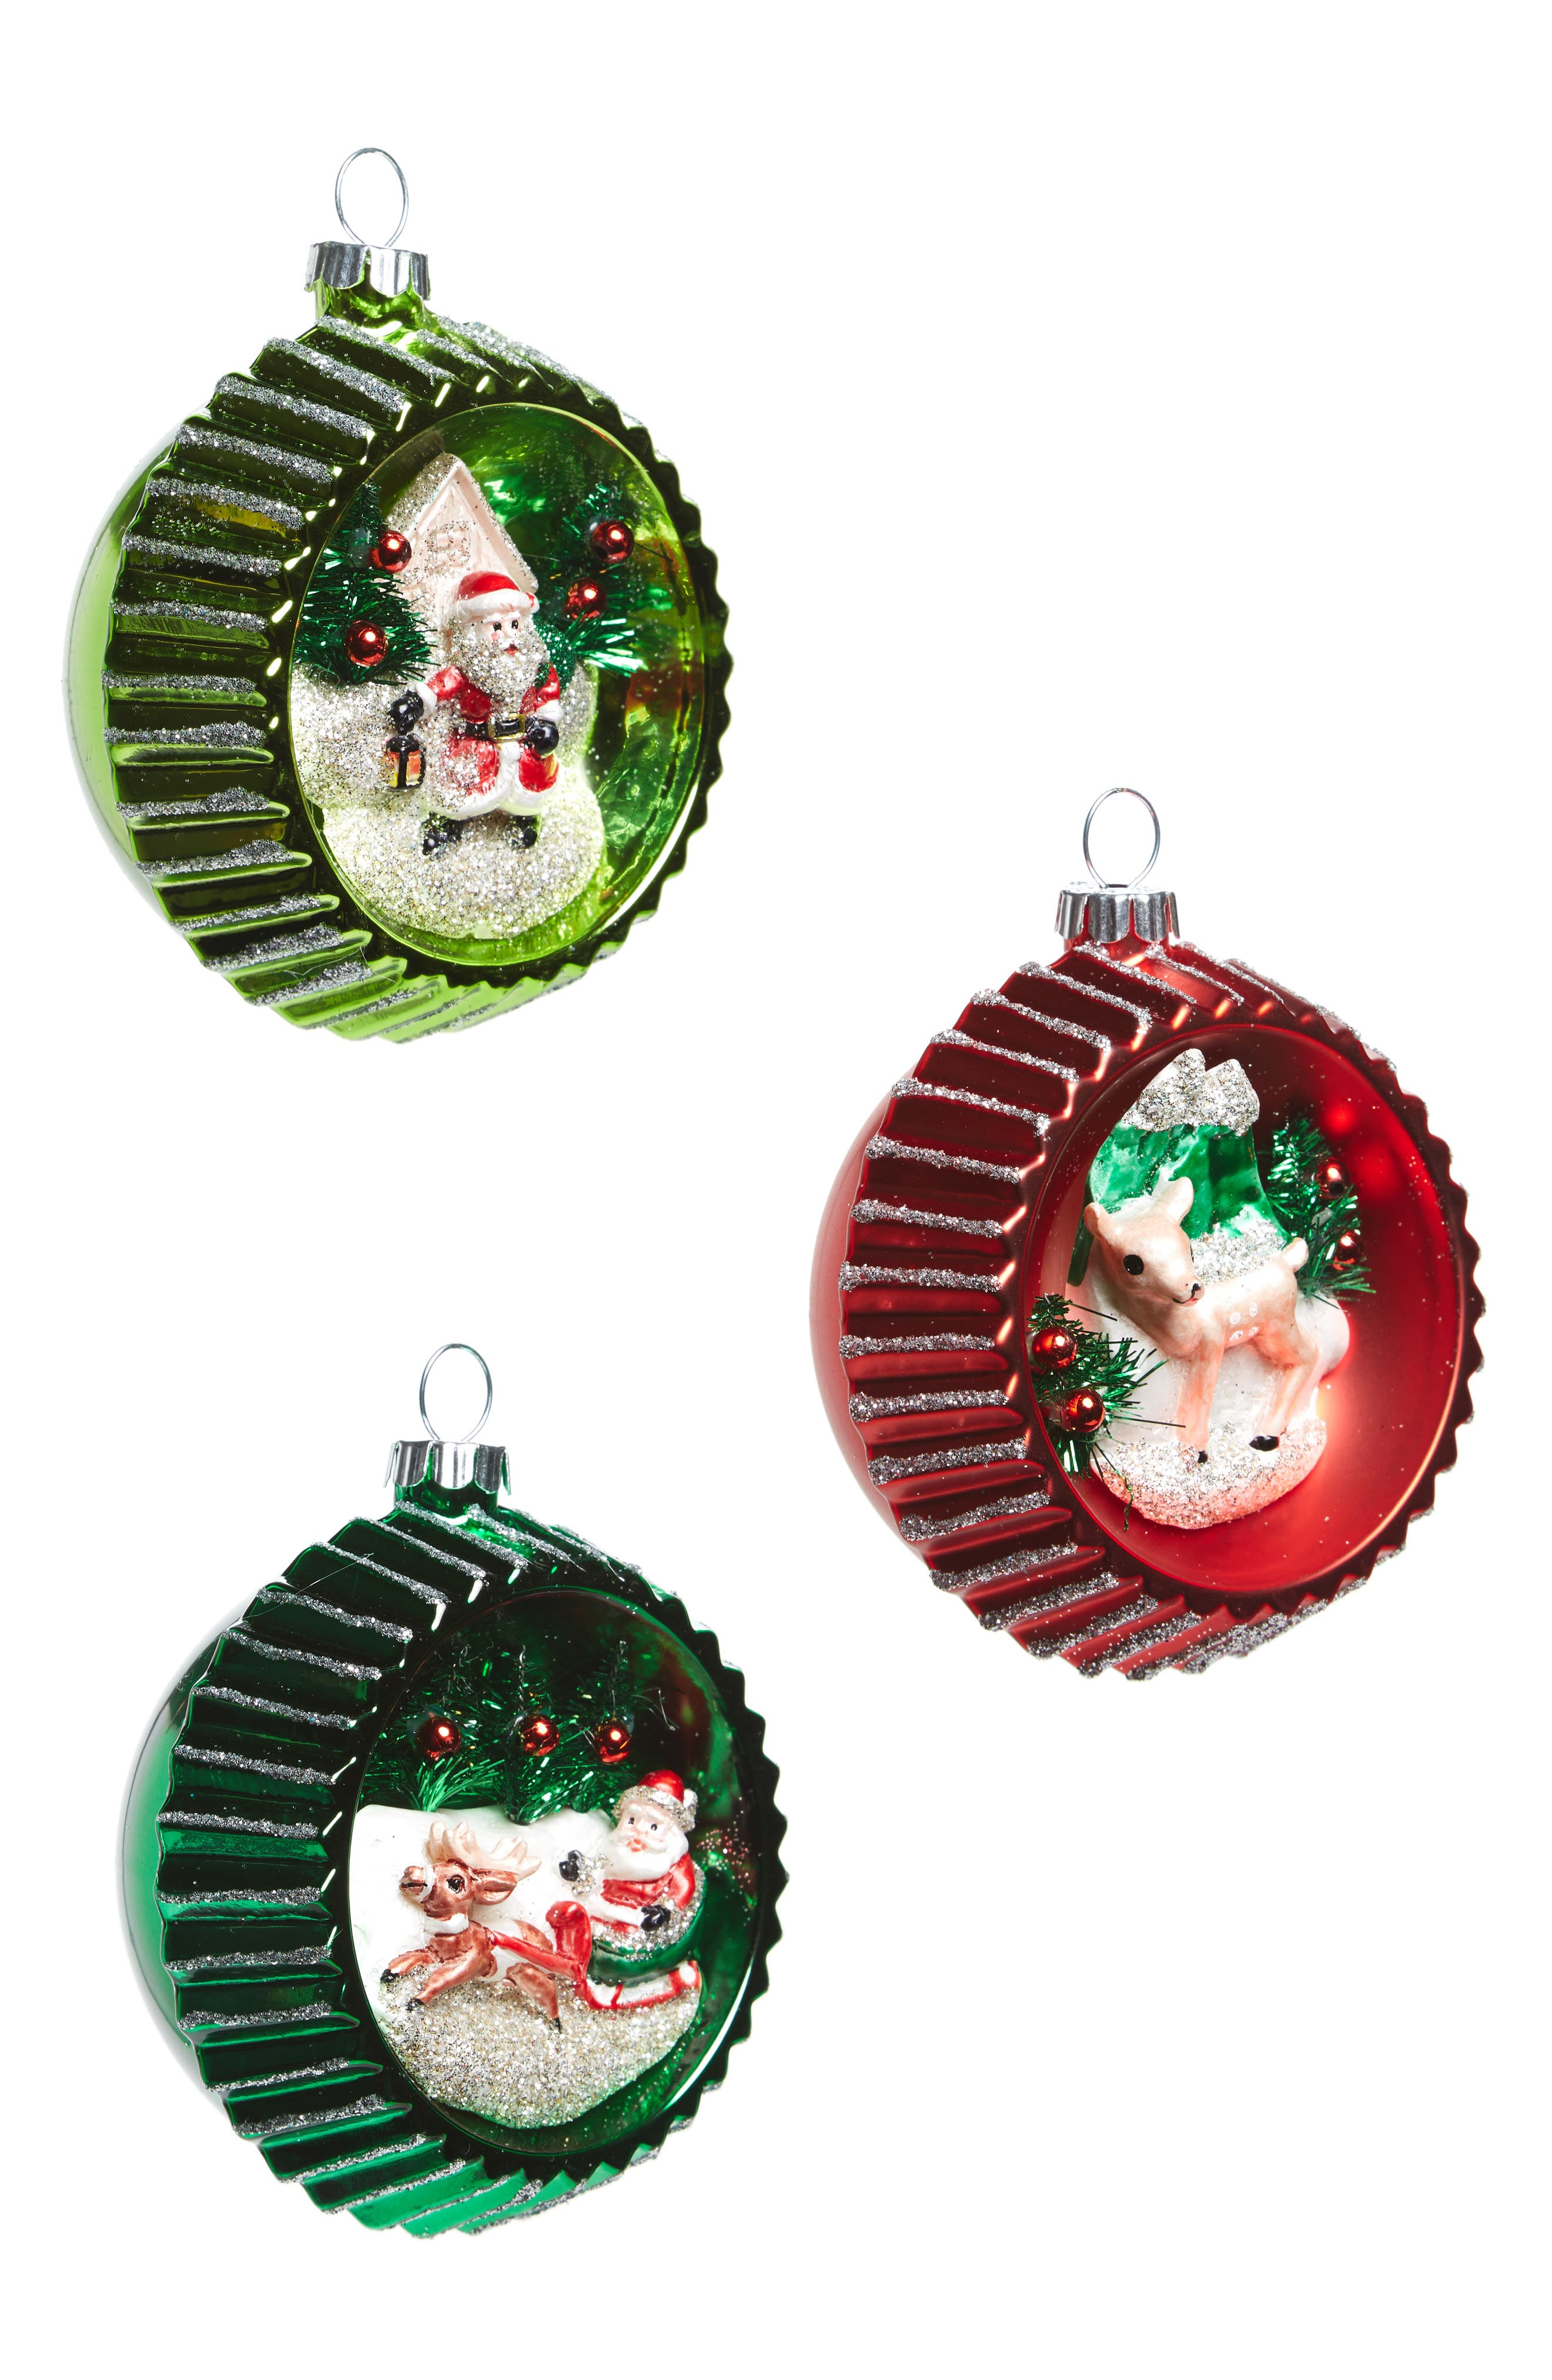 Main Image - Christopher Radko Holiday Splendor Set of 3 Glass Ornaments